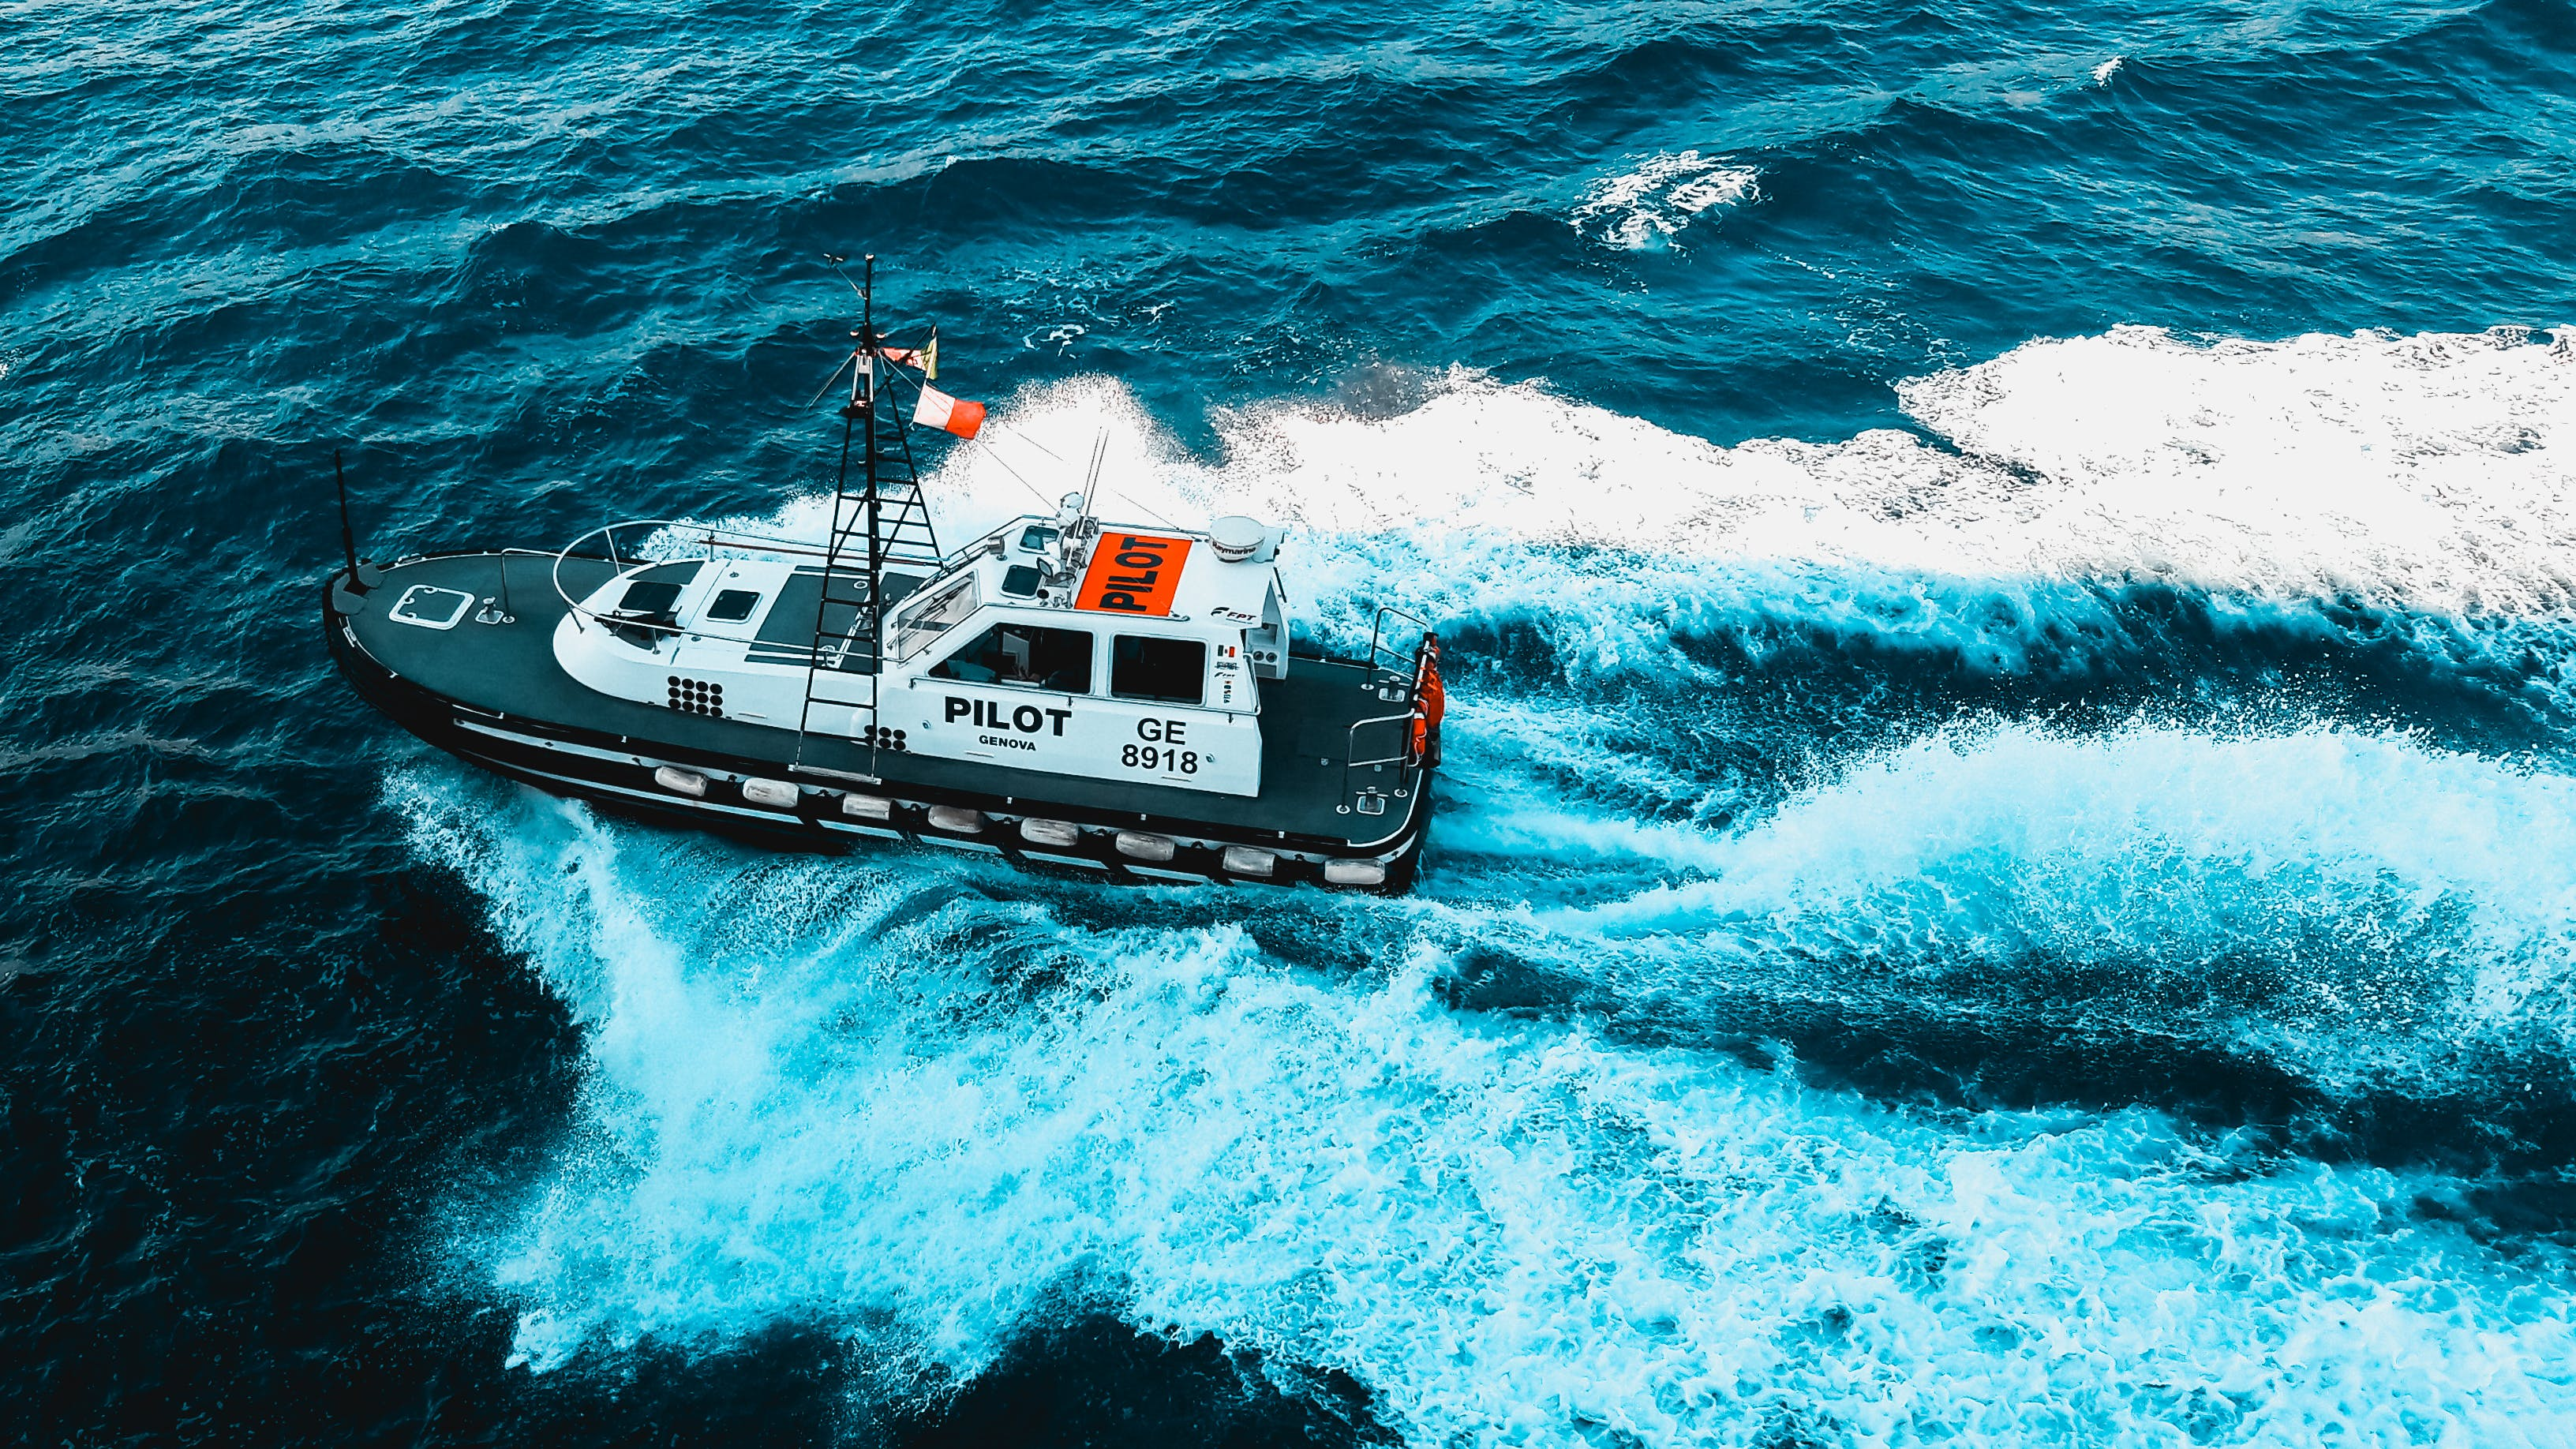 Black and White Pilot Tug Boat on Ocean